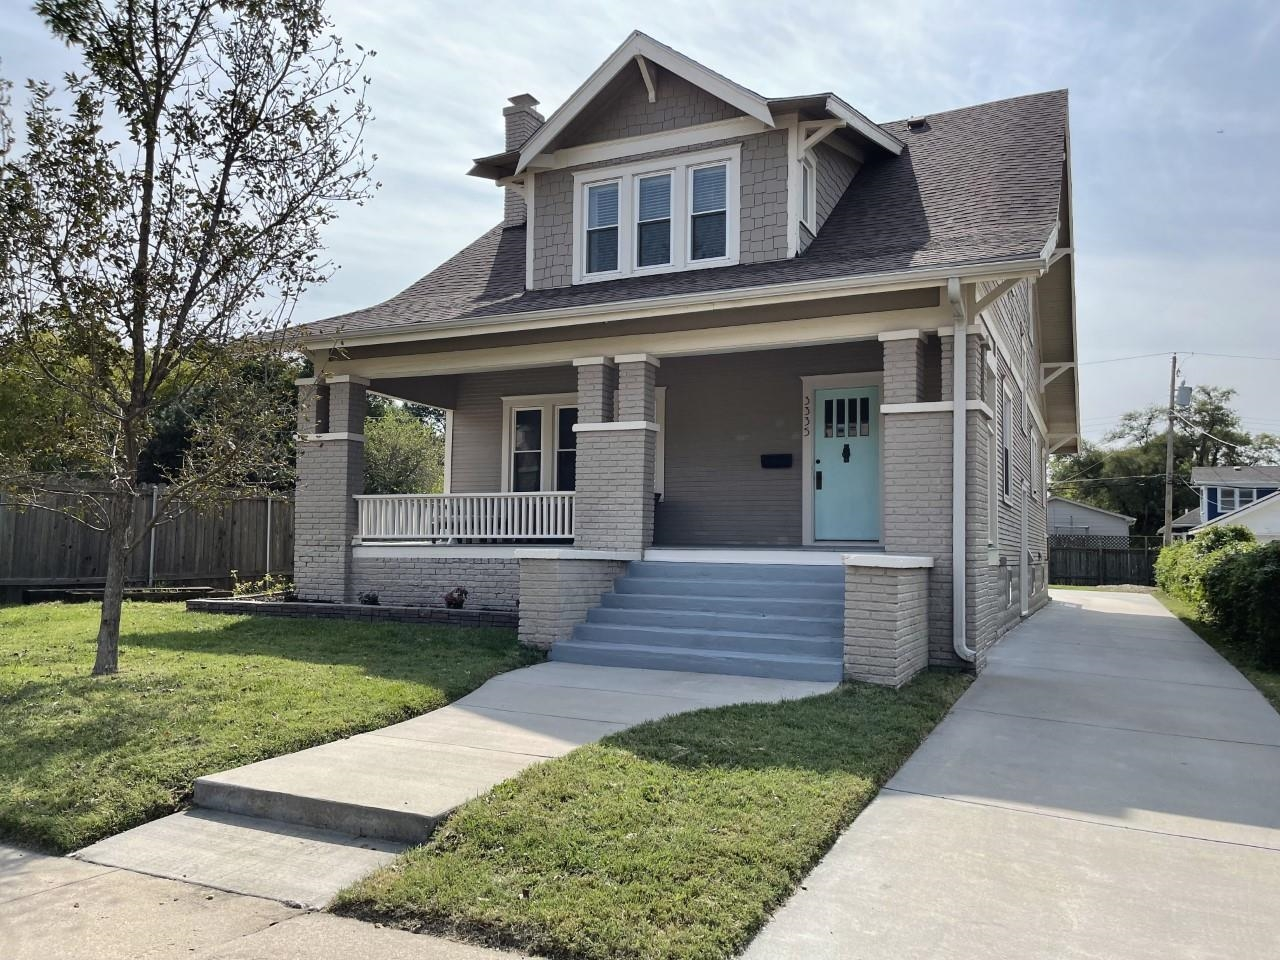 College Hill Bungalow with everything you need!  Four bedrooms including a main floor bedroom with b